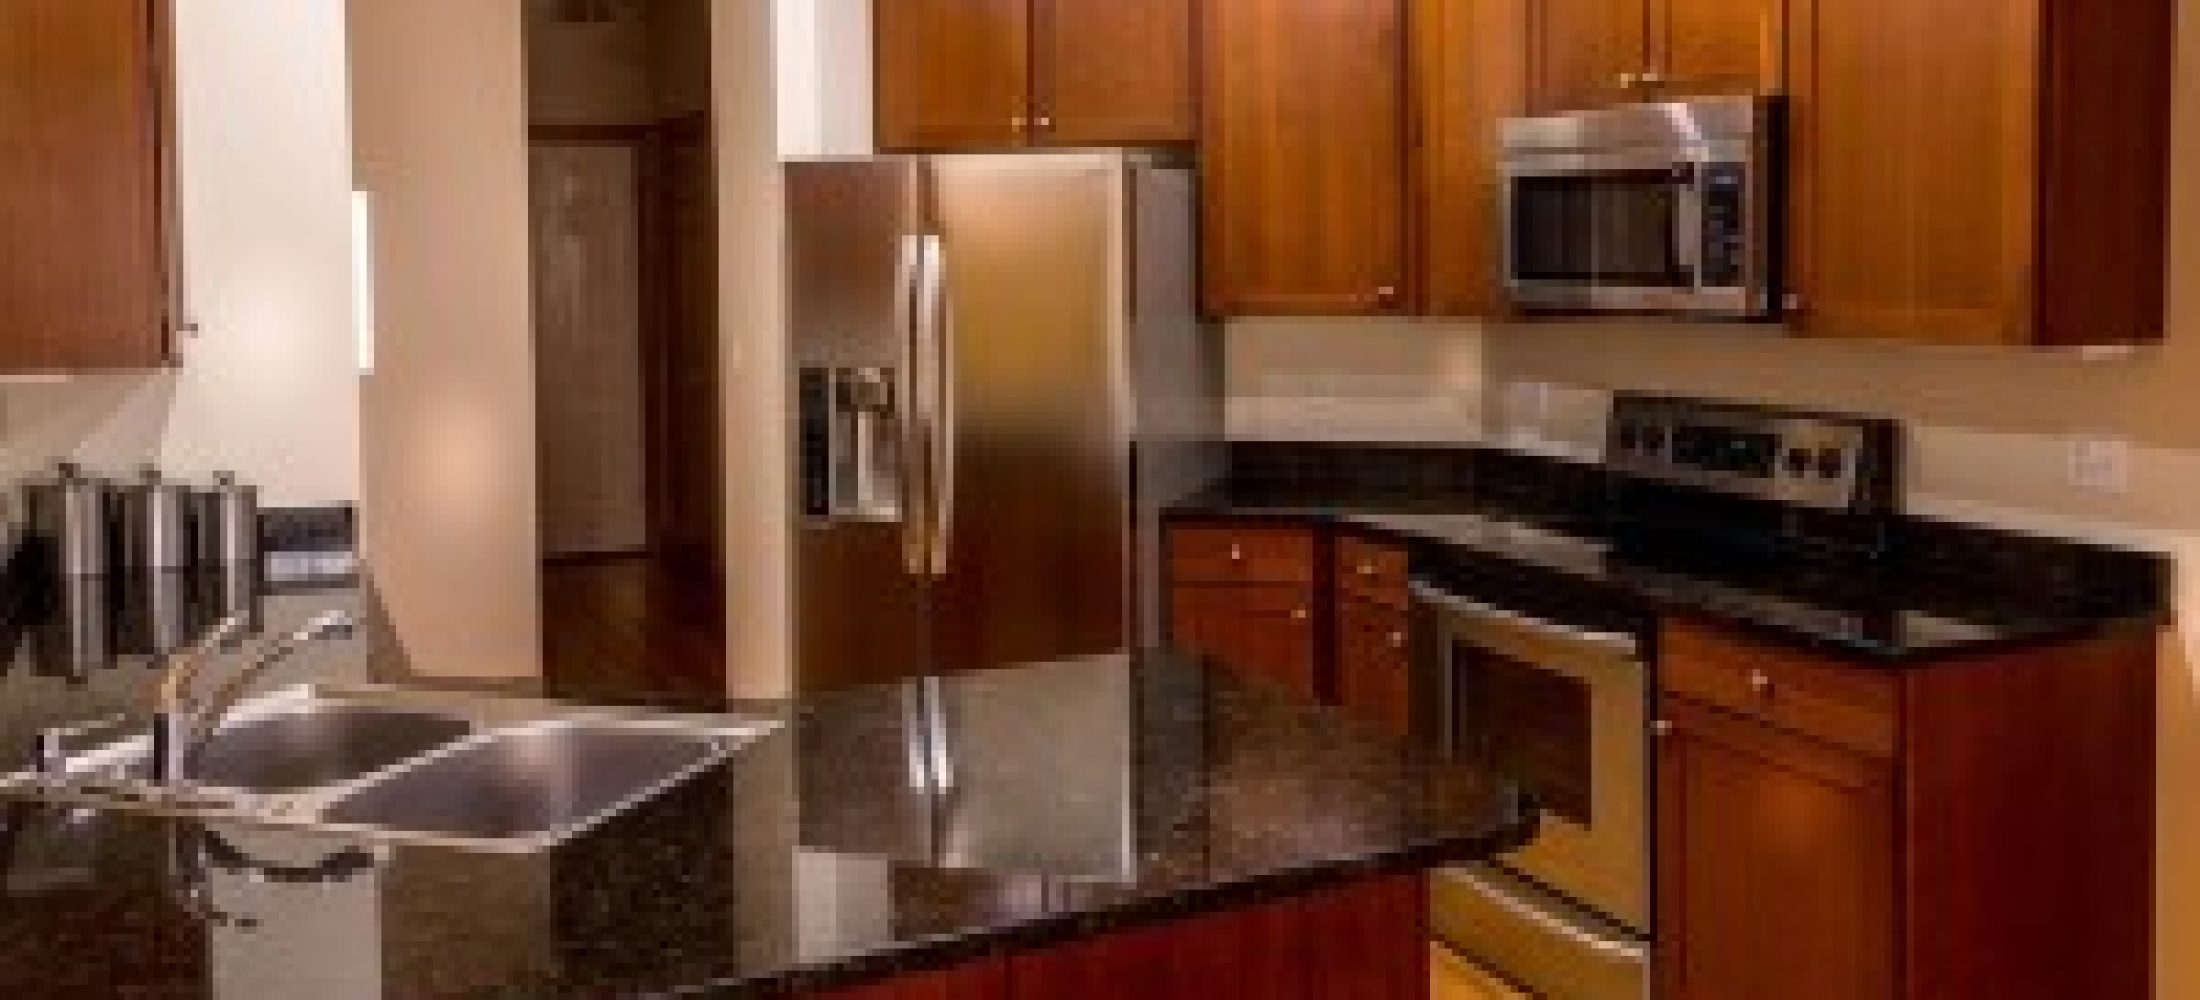 How To Clean Your Kitchen Appliances